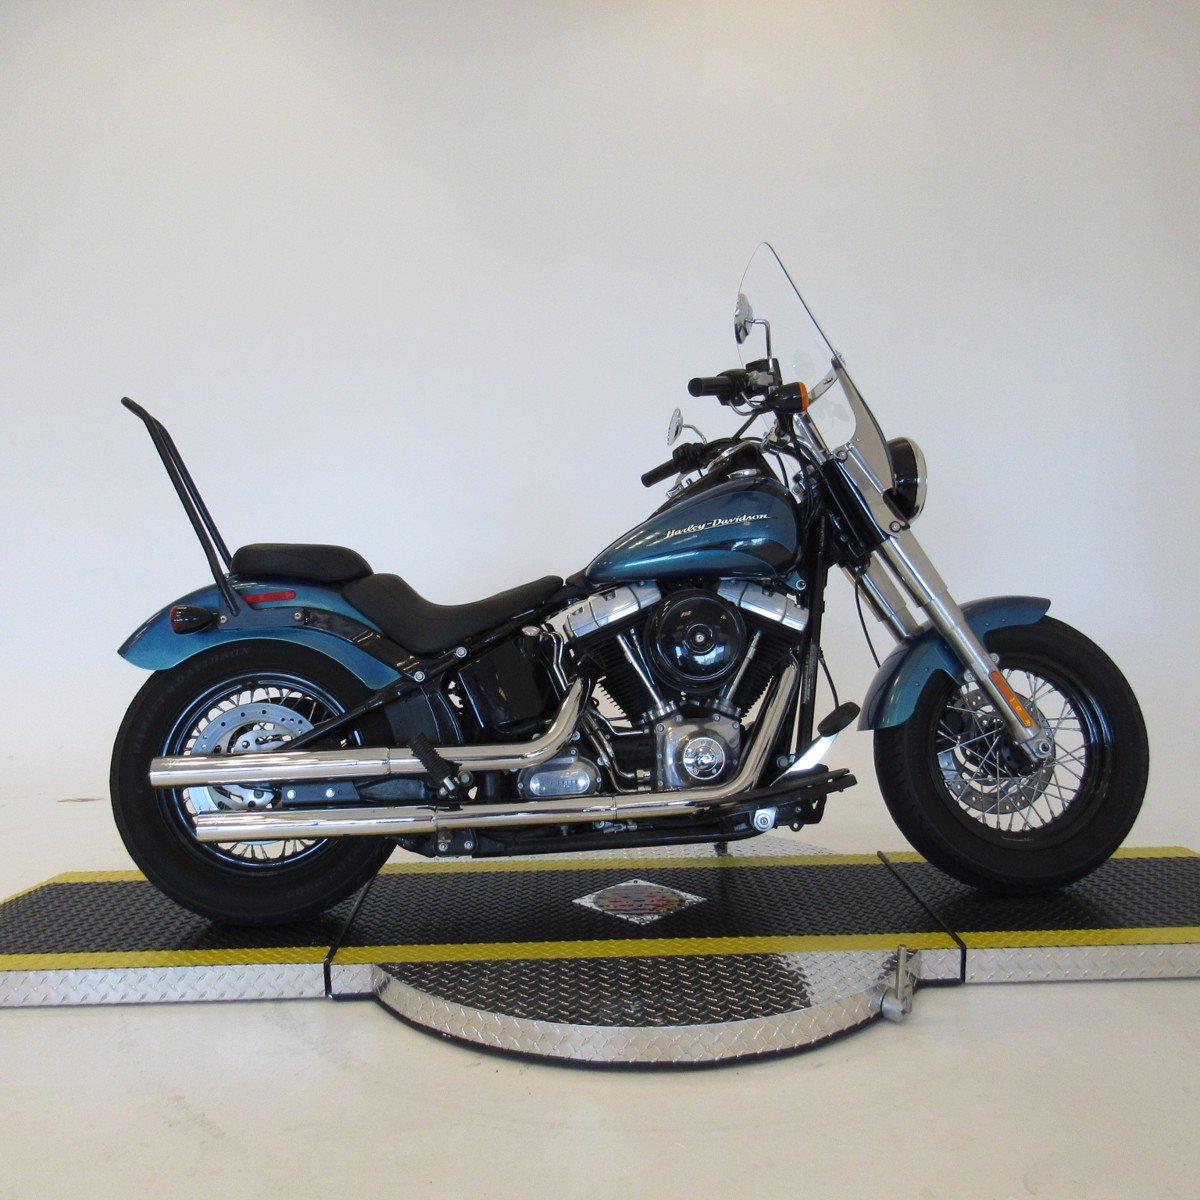 Pre-Owned 2014 Harley-Davidson Softail Slim FLS